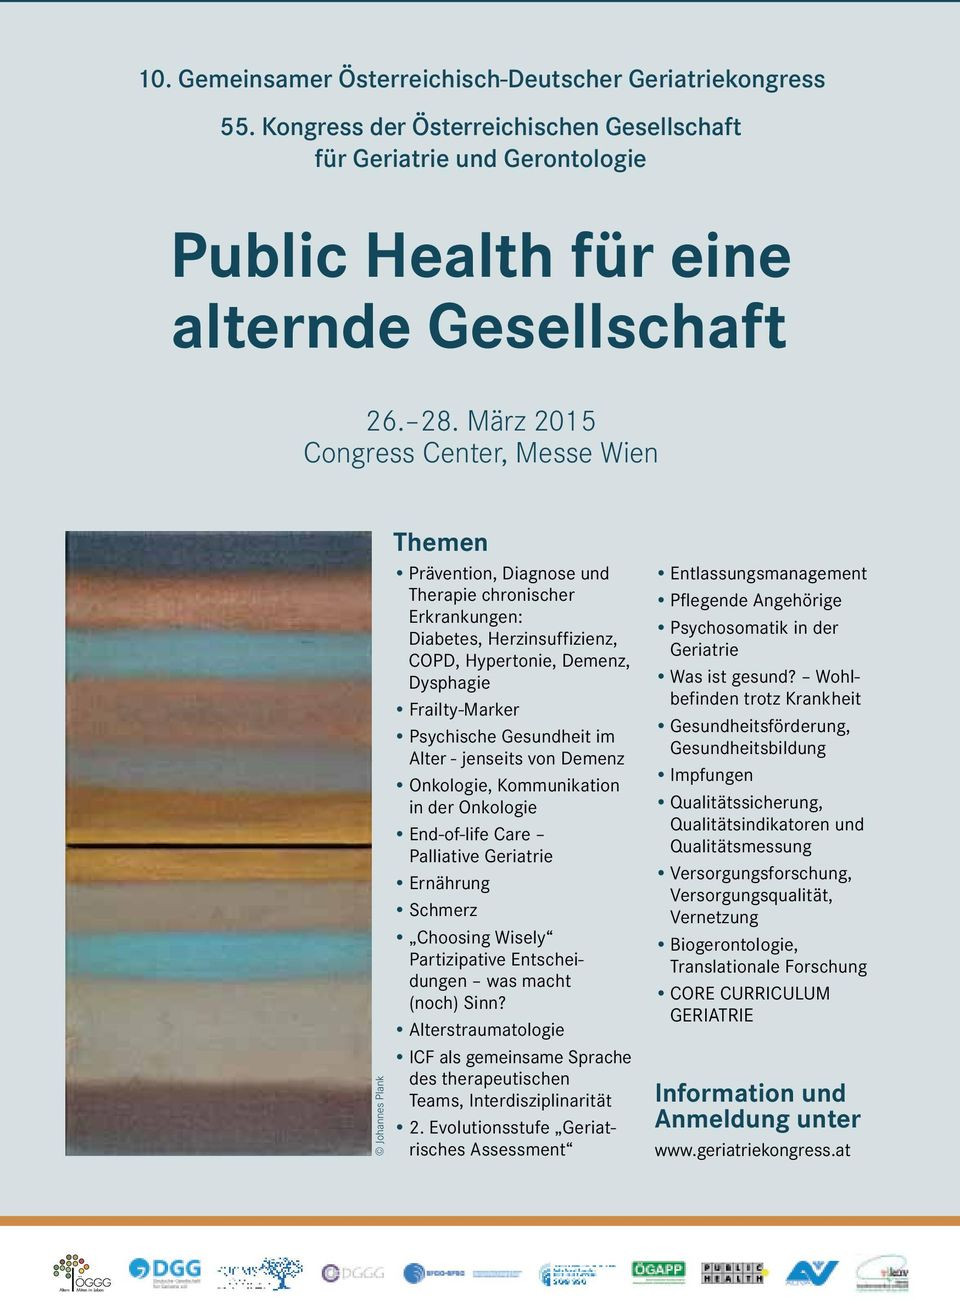 Psychische Gesundheit im Alter - jenseits von Demenz Onkologie, Kommunikation in der Onkologie End-of-life Care Palliative Geriatrie Ernährung Schmerz Choosing Wisely Partizipative Entscheidungen was